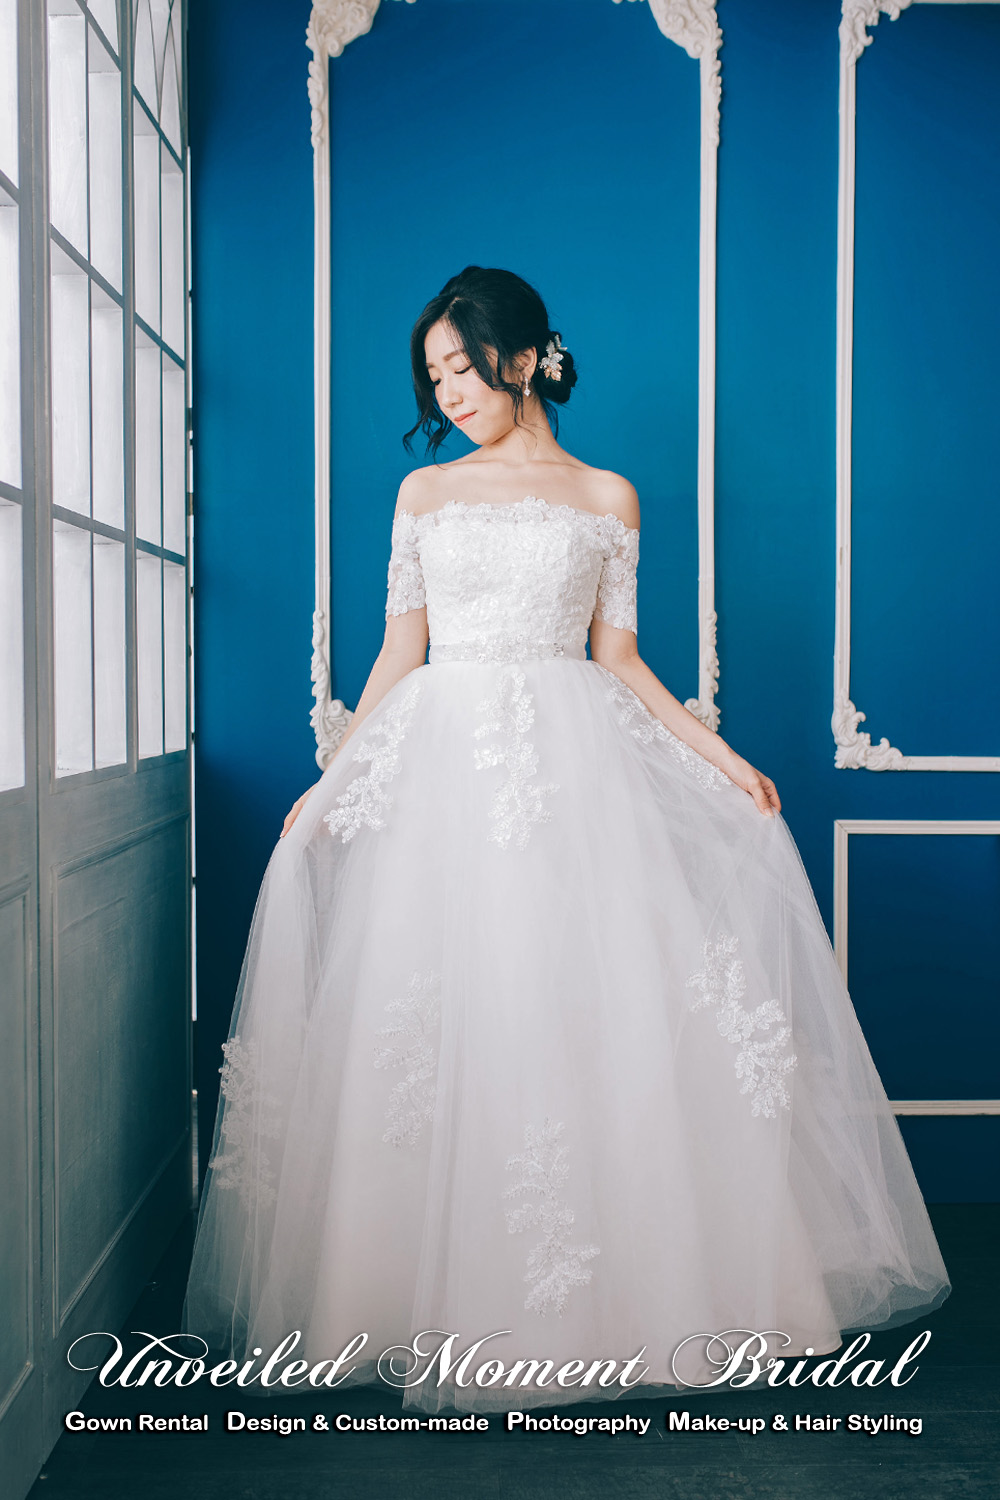 Off-the-shoulder, lightly beaded wedding dress with floor-length. 一字肩, 閃片釘珠, 齊地款公主傘裙婚紗